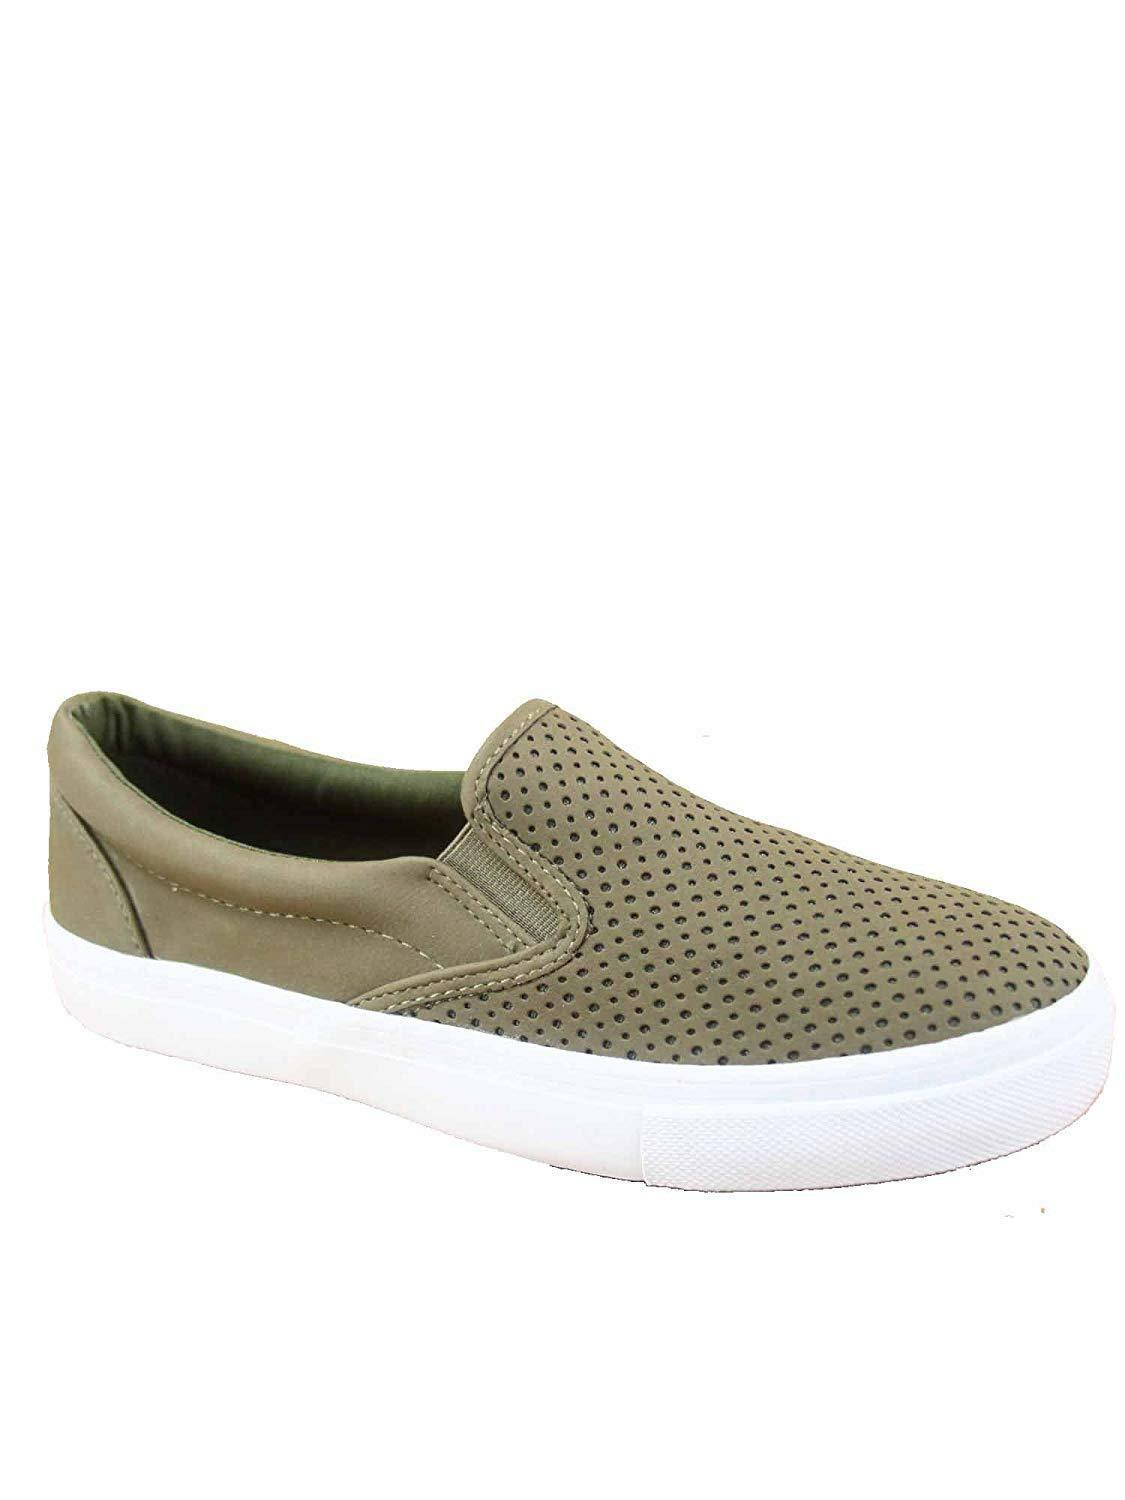 Soda Tracer-S Women's Cute Perforated Slip On Flat Round Toe Sneaker Shoes